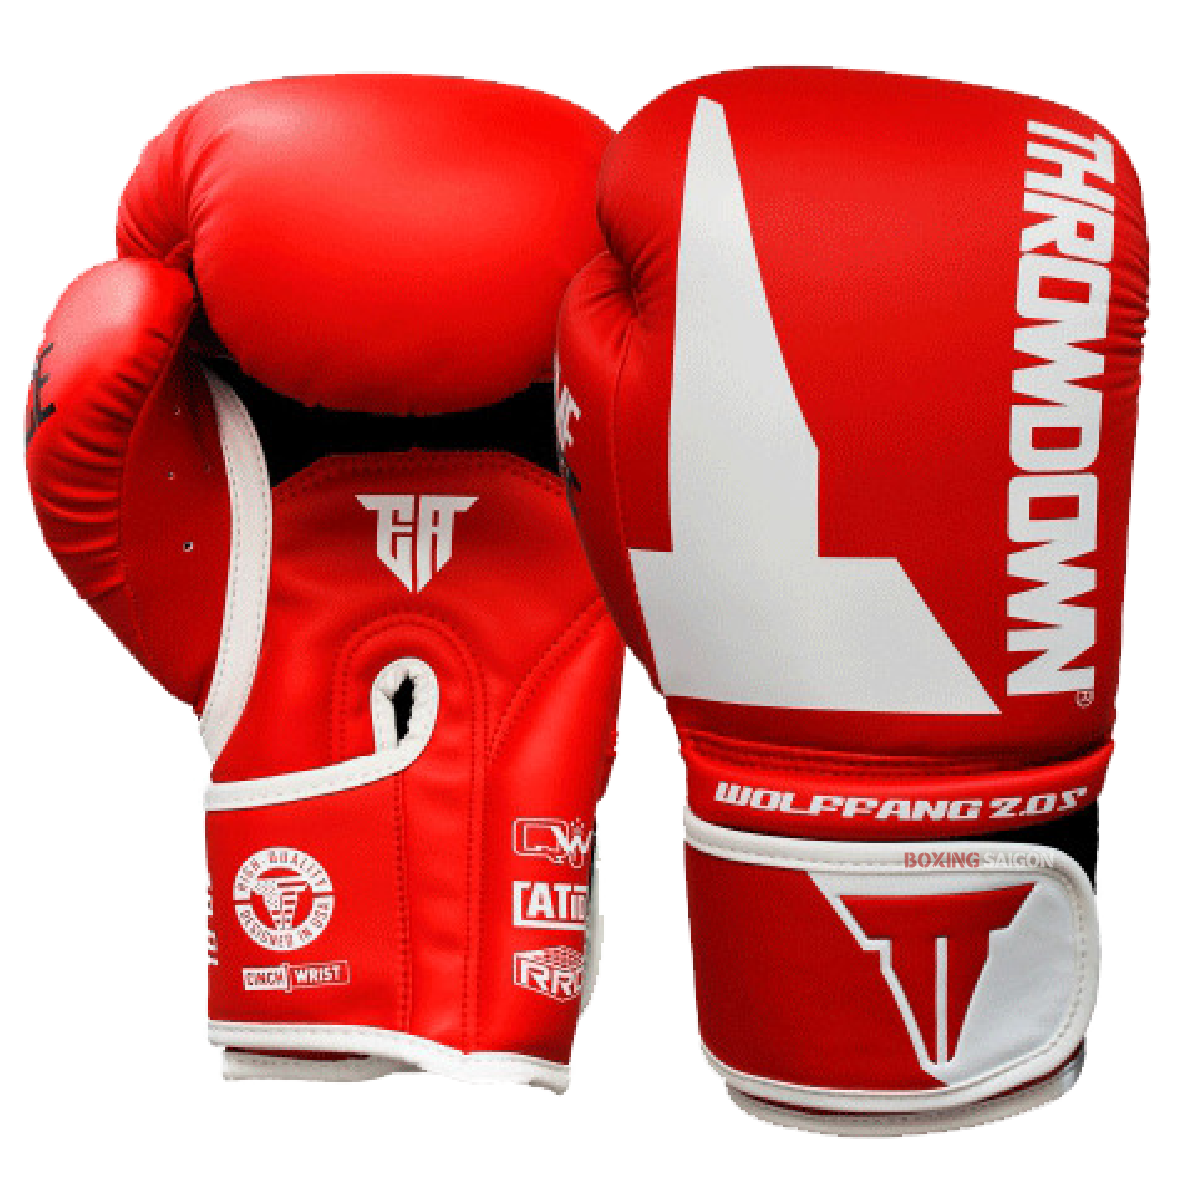 Găng Tay Throwdown Wolf Fang 2.0S Boxing Gloves - Red